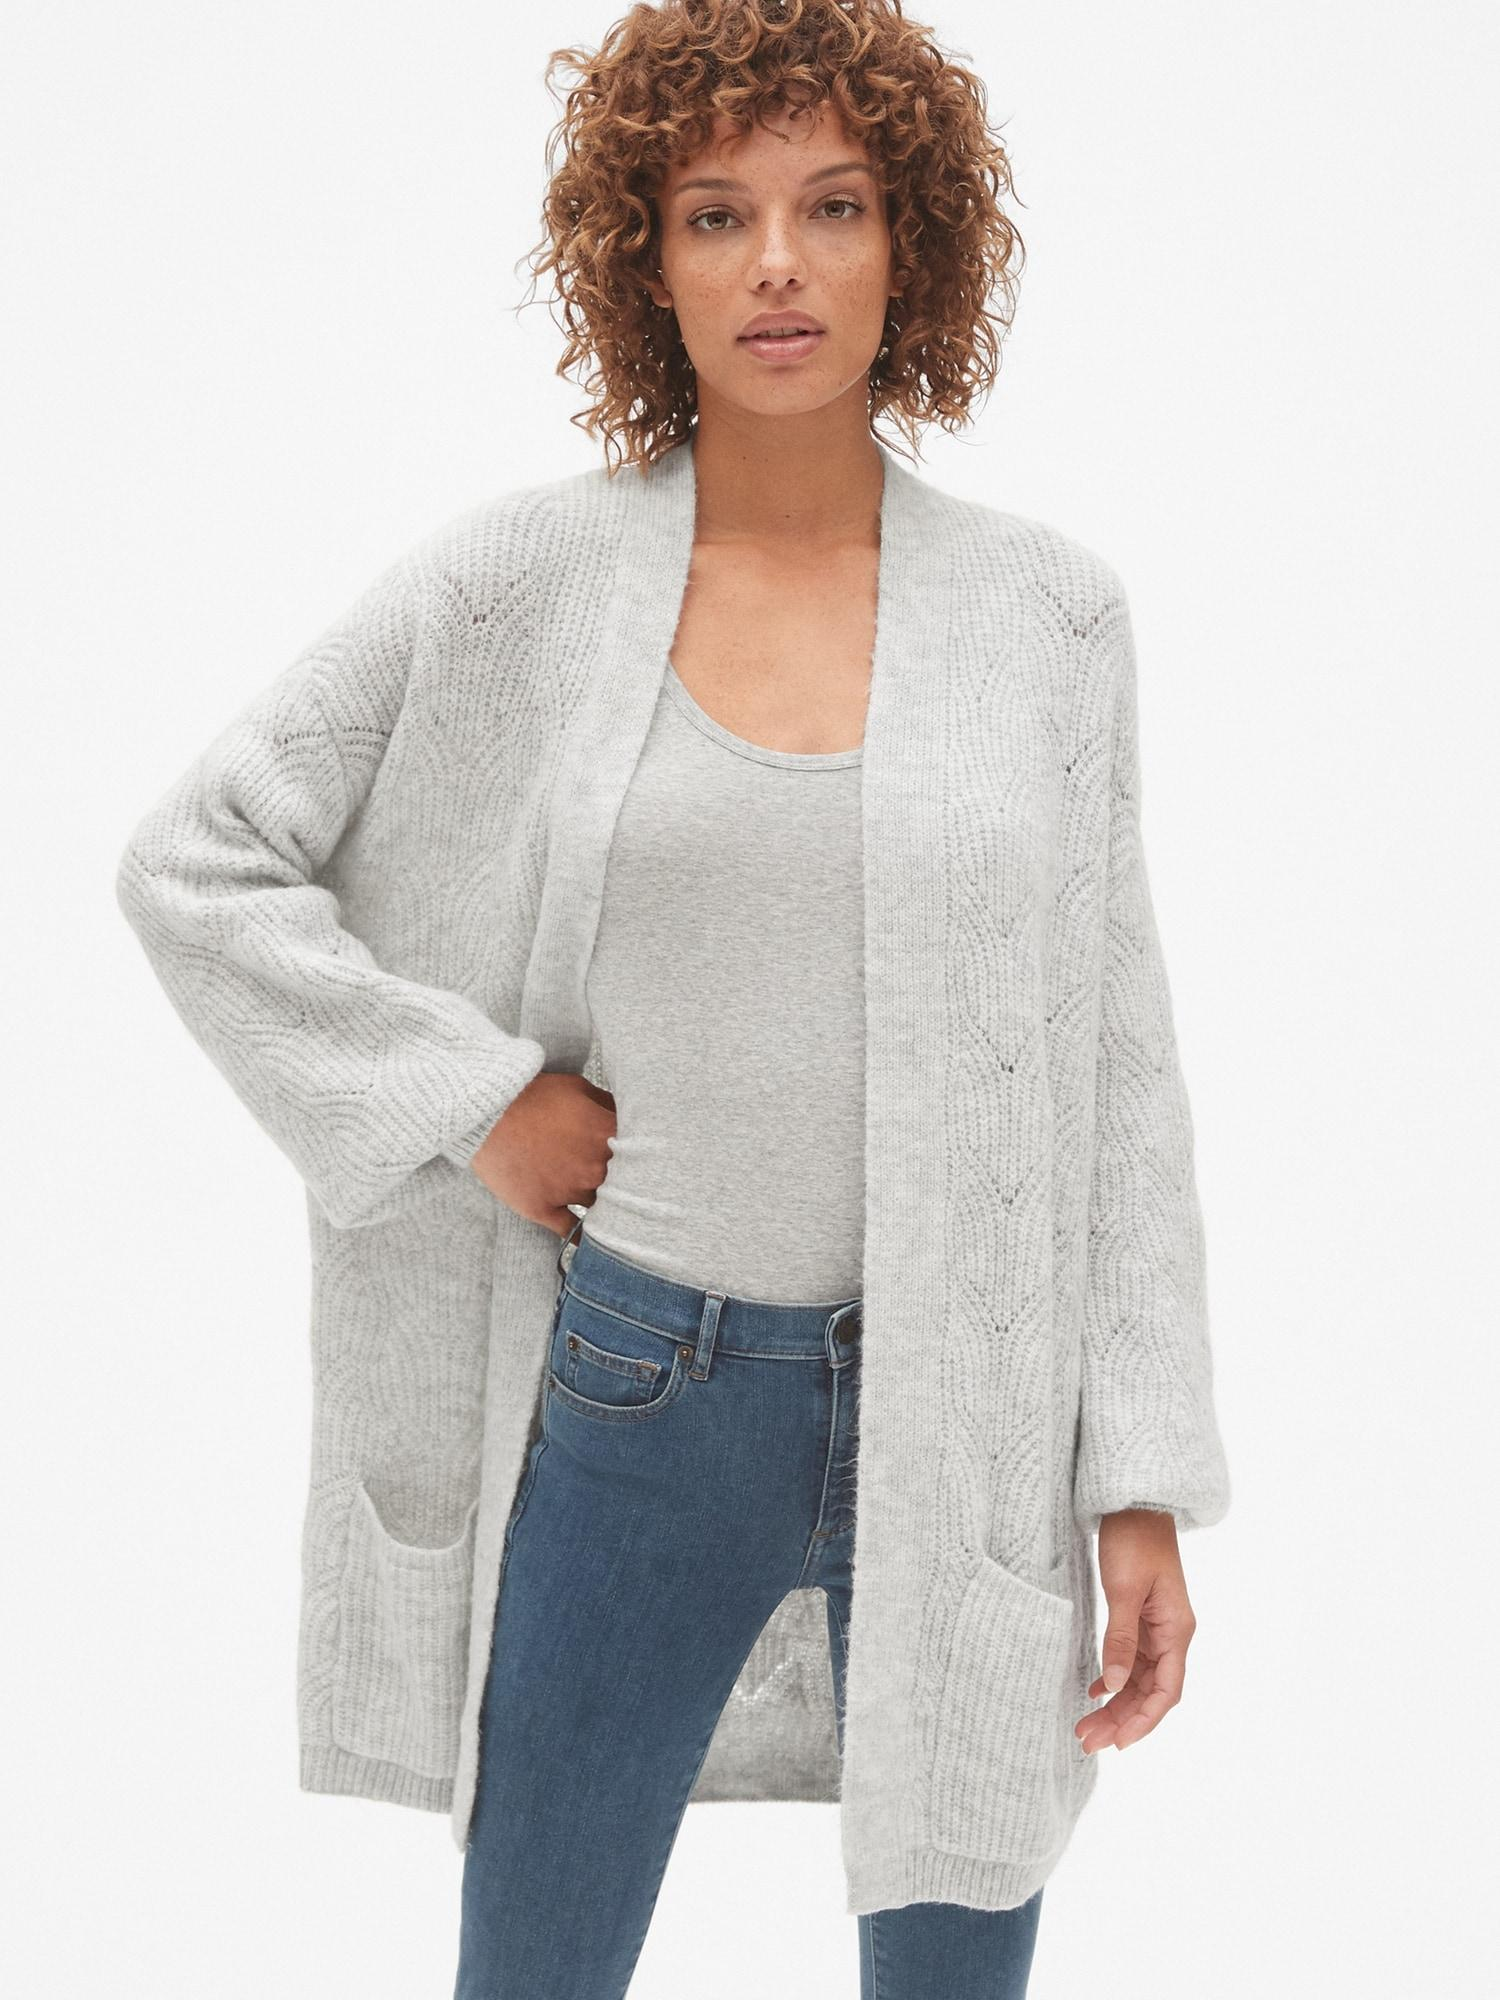 debb00a863 Lyst - Gap Brushed Pointelle Open-front Cardigan Sweater in Gray